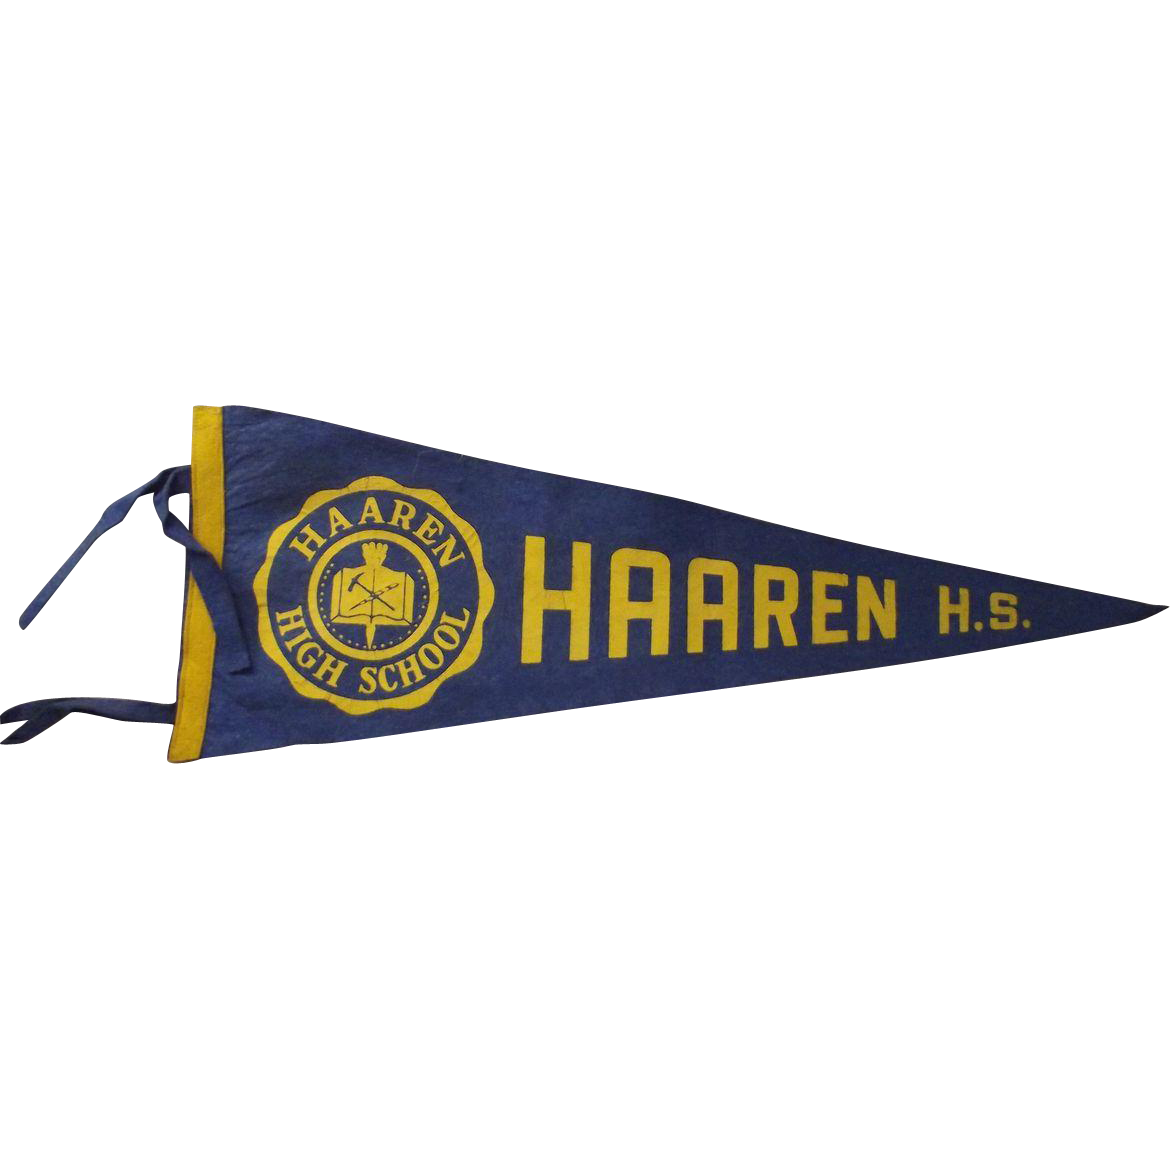 Haaren High School Pennant Manhatten New York City